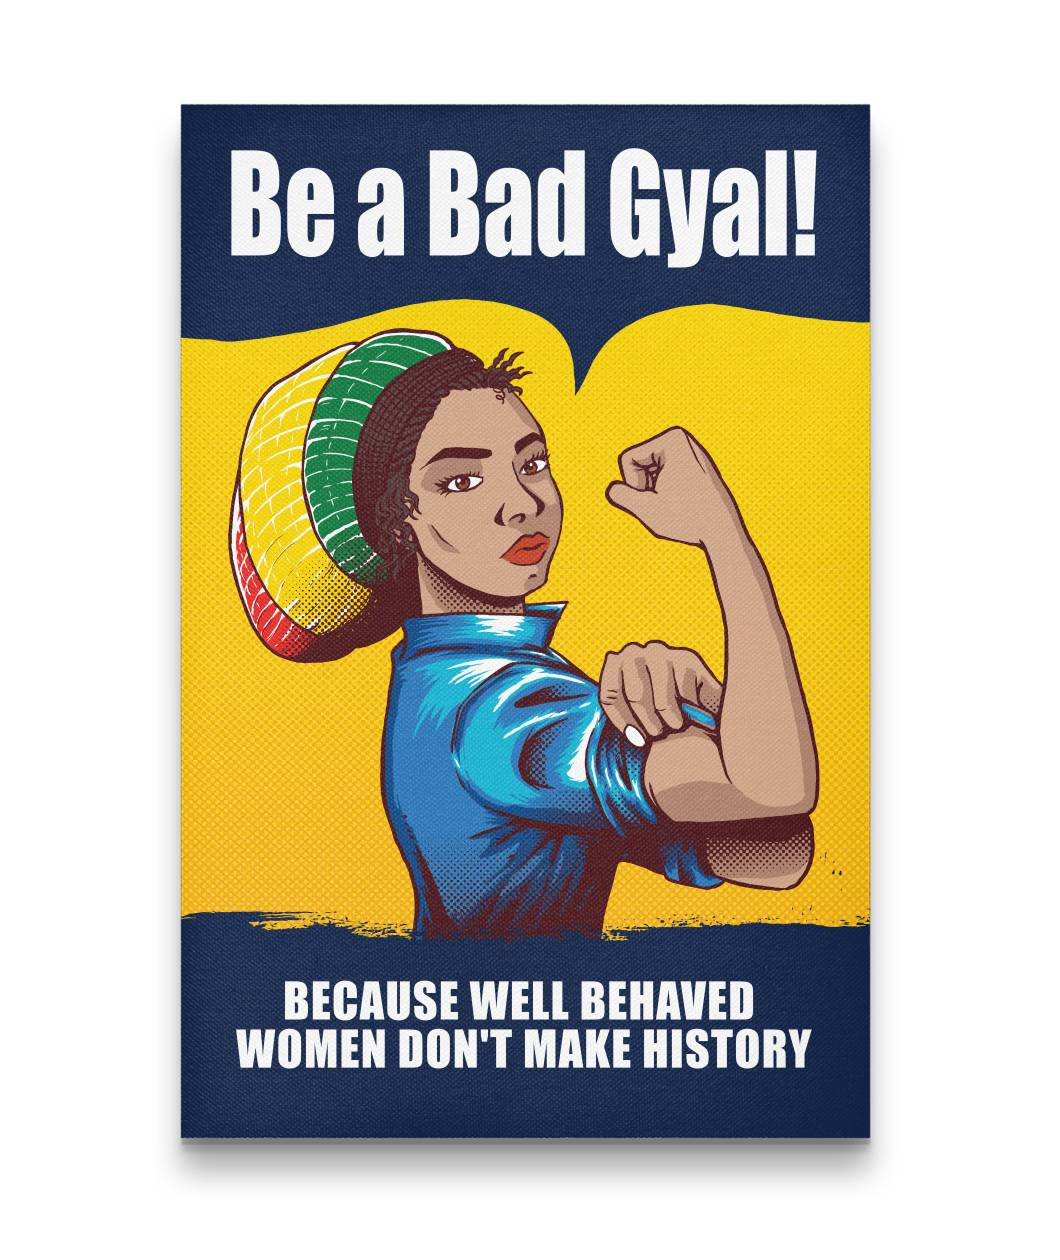 WELL BEHAVED WOMEN DON'T MAKE HISTORY CANVAS ART - Rice & Tees